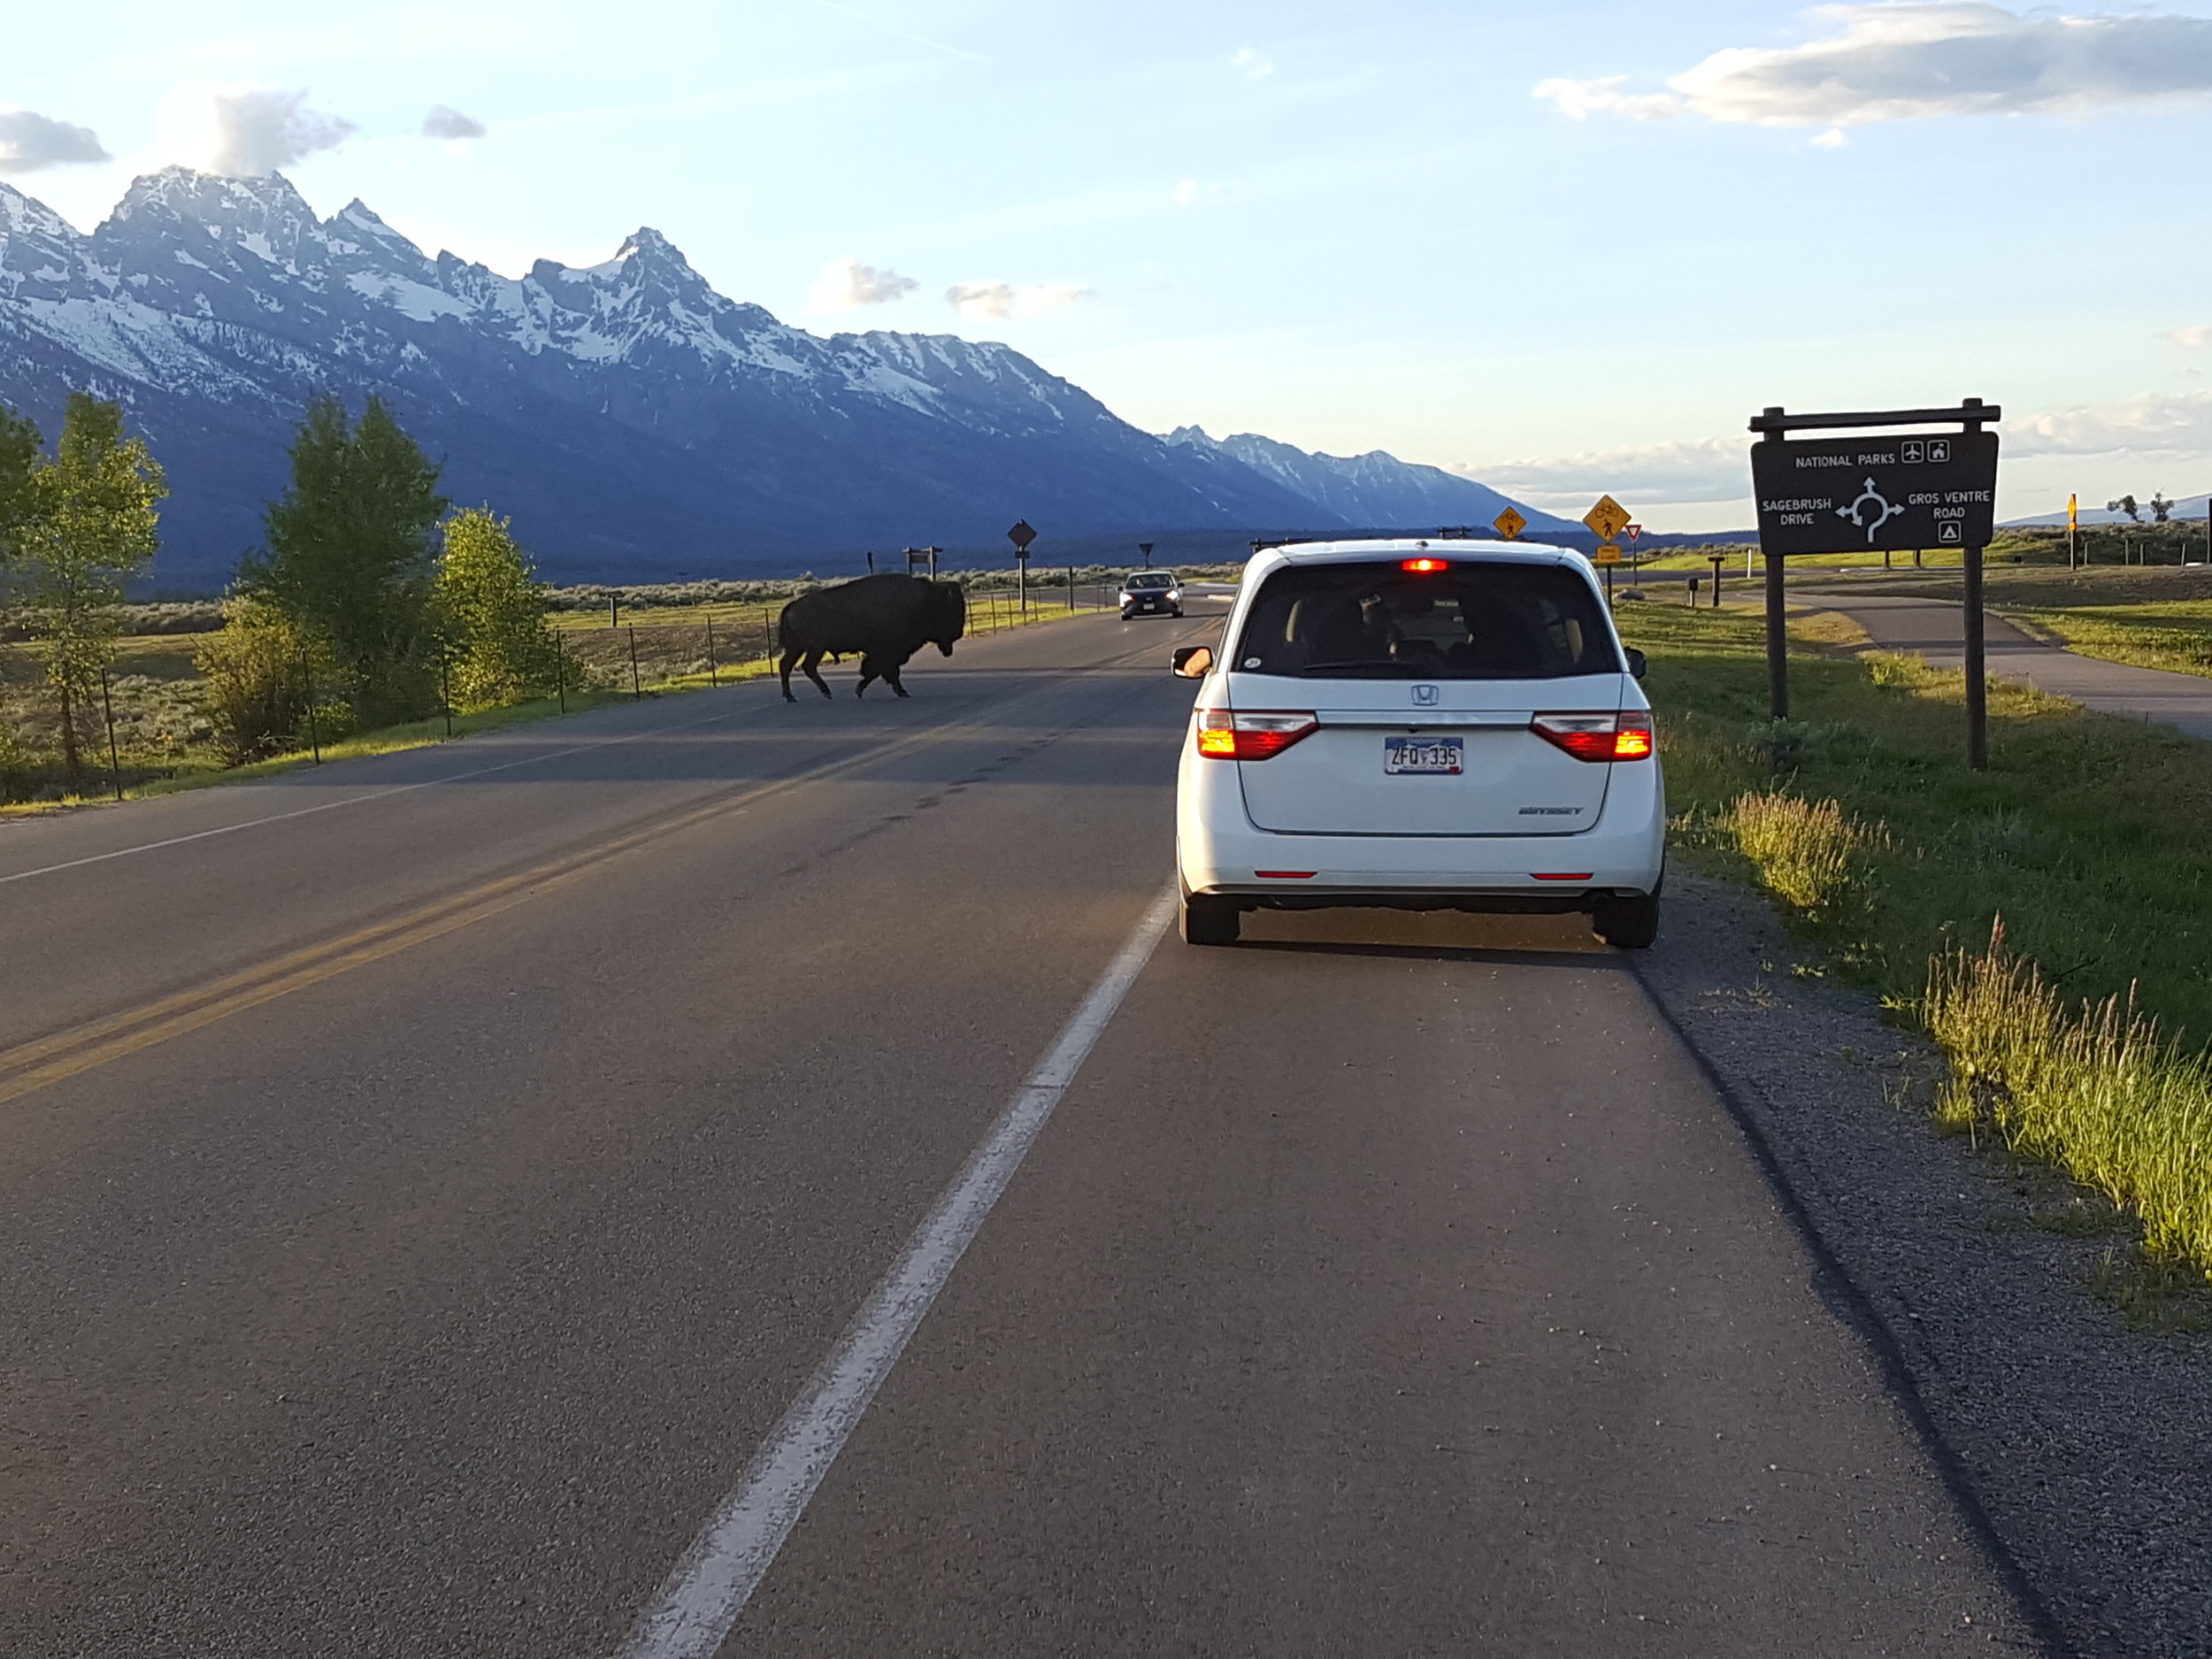 A lone bison crossing the road near Jackson, Wyoming and Grand Teton National Park. (Photo GYC.)